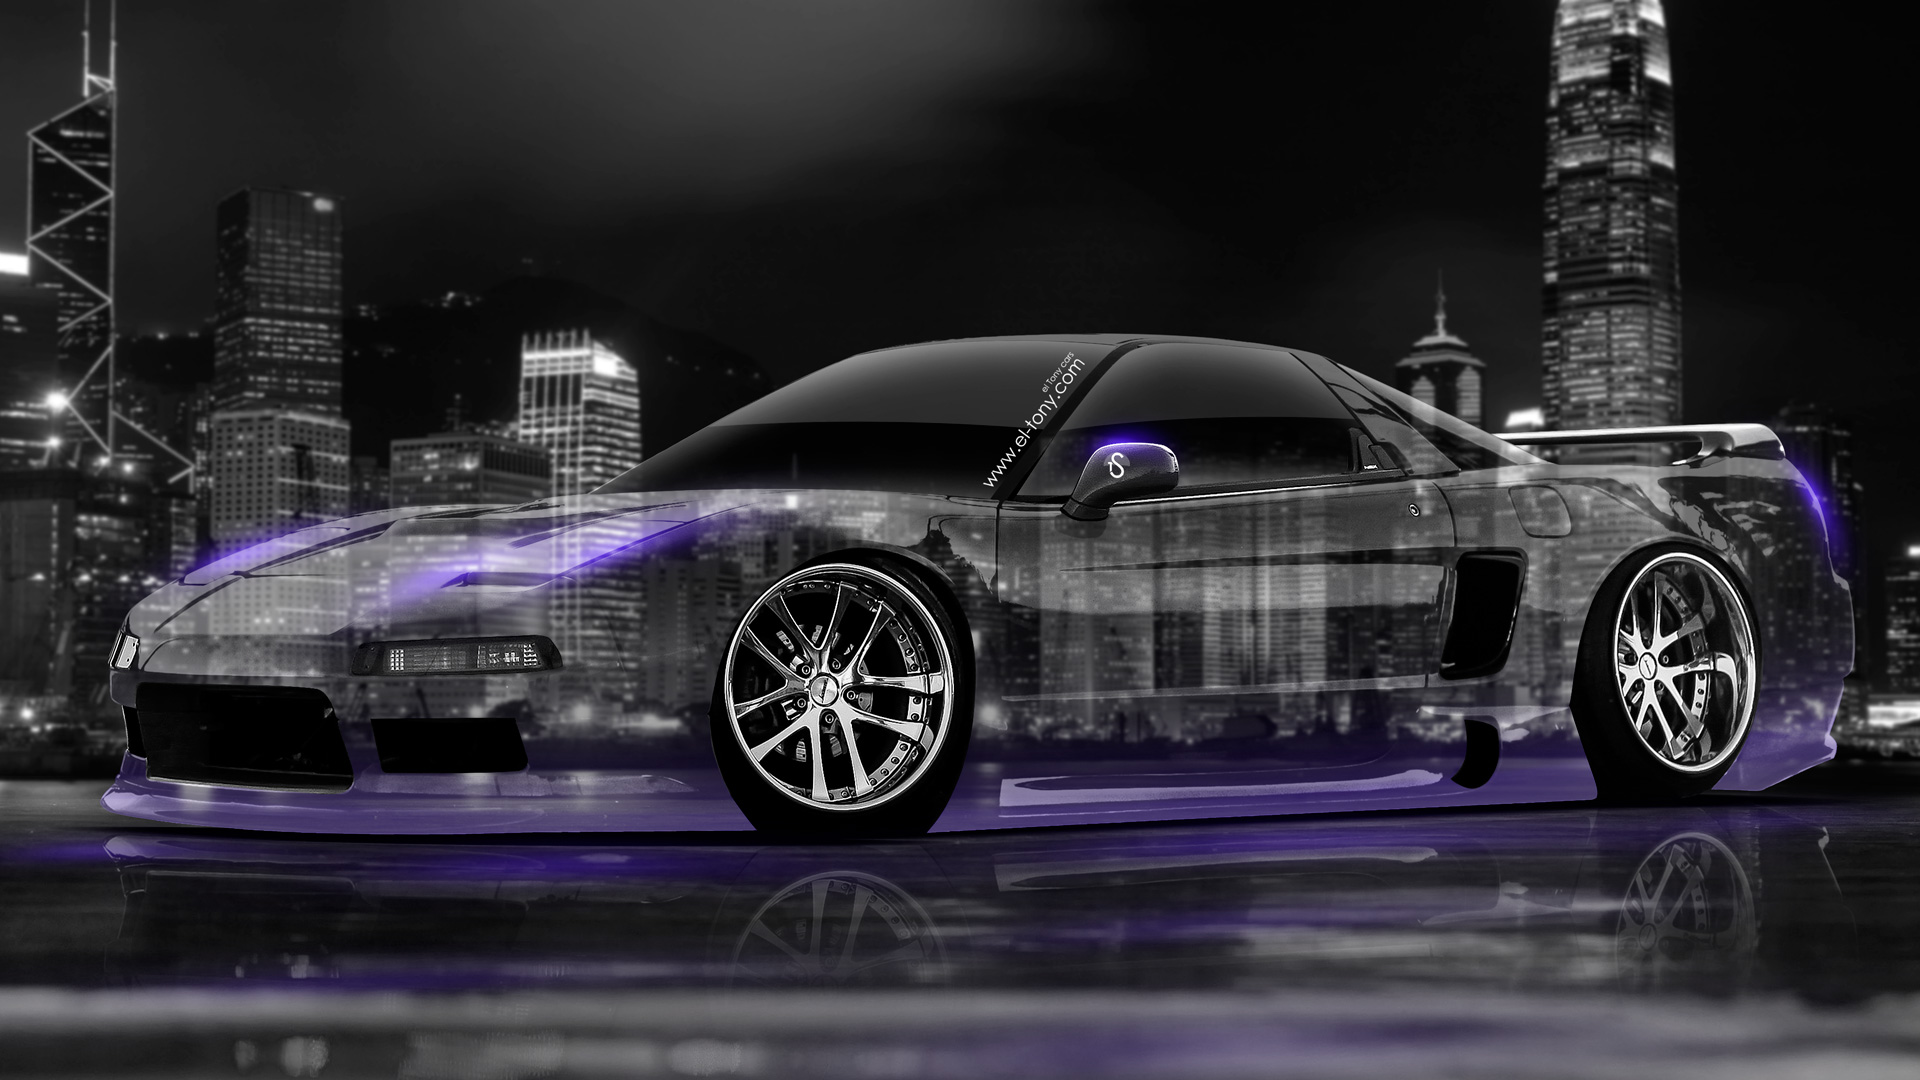 Lovely 1920x1080 Honda NSX JDM Crystal City Car 2014 Violet Neon HD Wallpapers  Design .